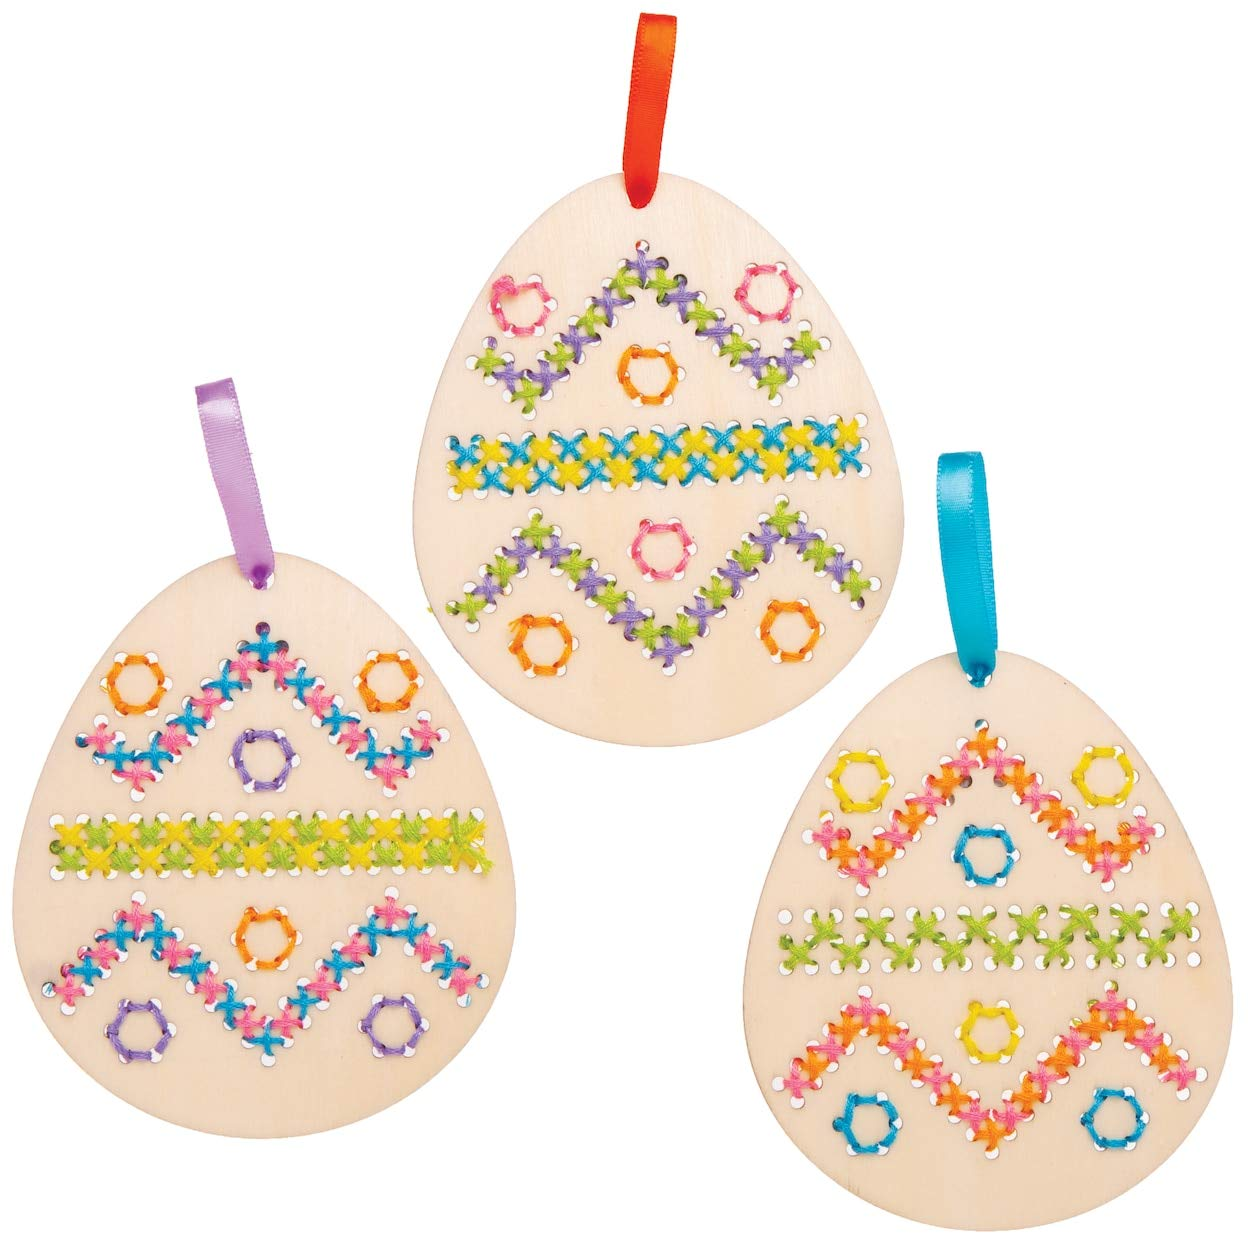 Baker Ross Easter Egg Wooden Cross Stitch Decoration Kits Keepsakes and More 5 Pack Ideal for Kids Arts and Craft Project Gifts Educational Toys